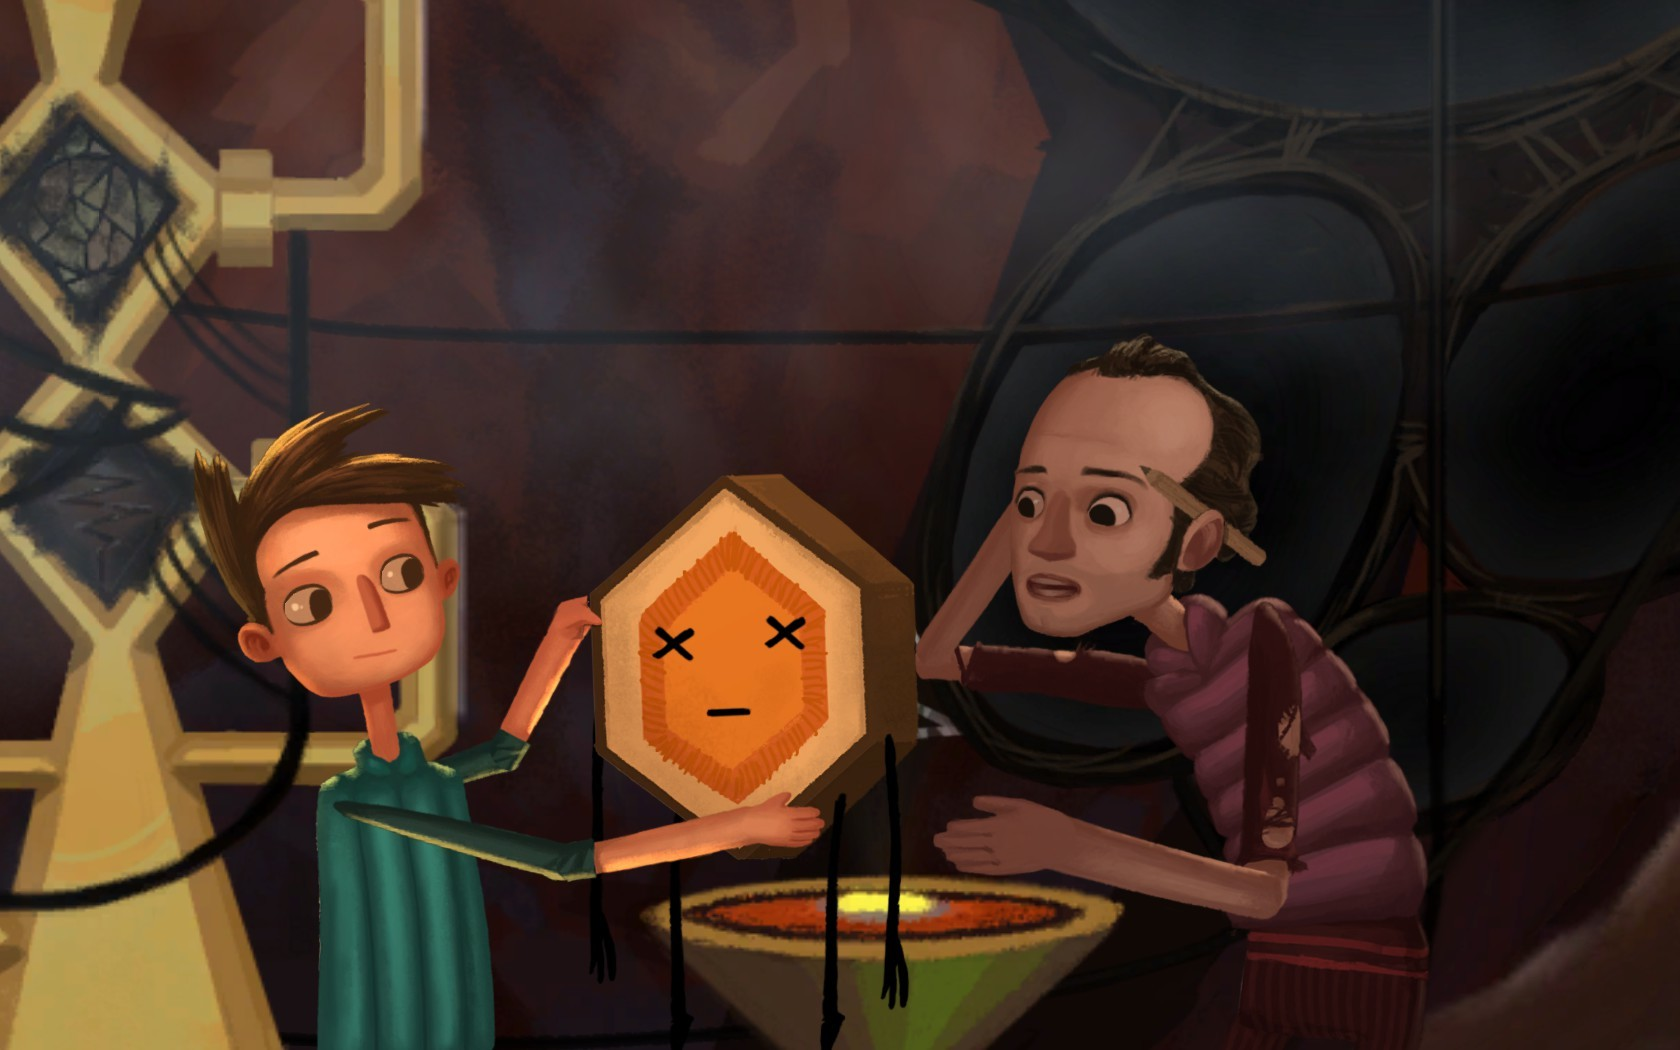 broken age act 2 pic 1